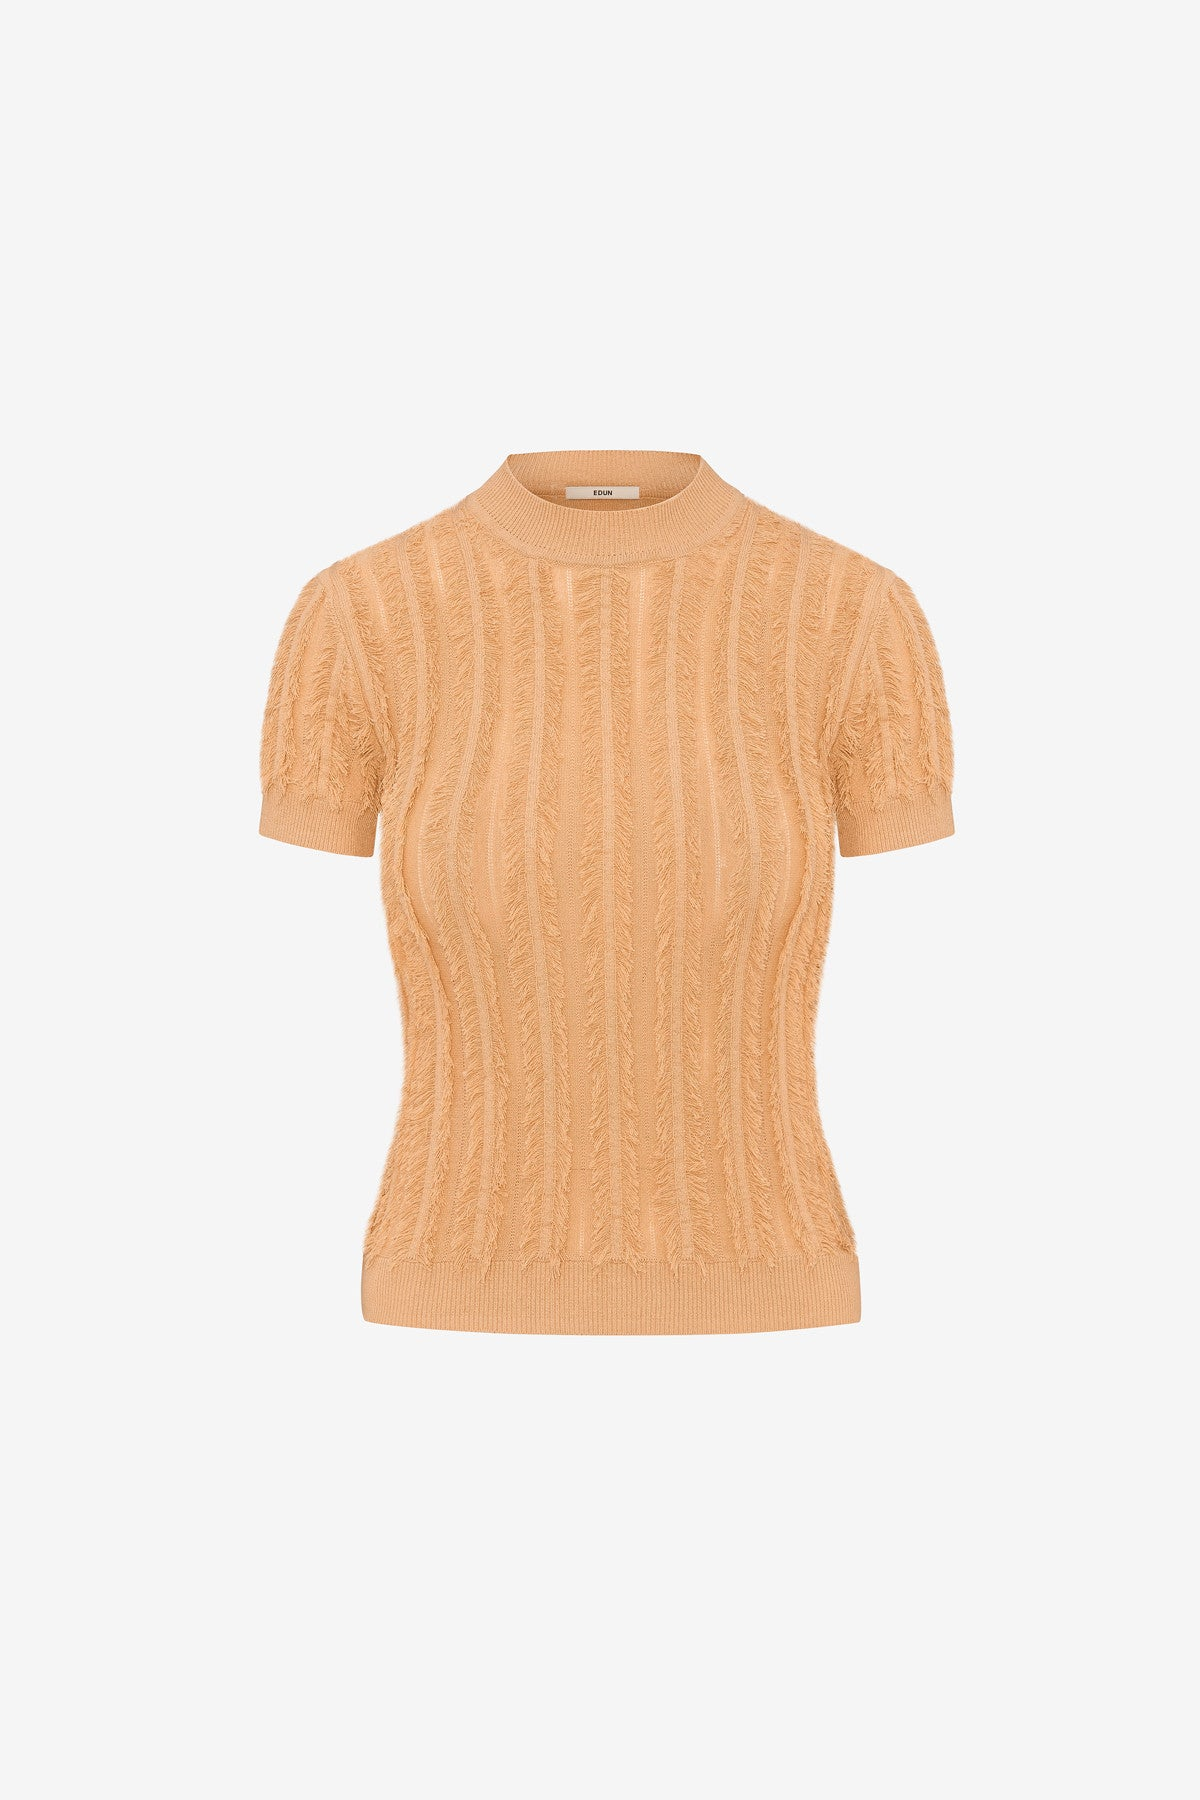 STRETCH VISCOSE FRINGE SHORT SLEEVE TOP